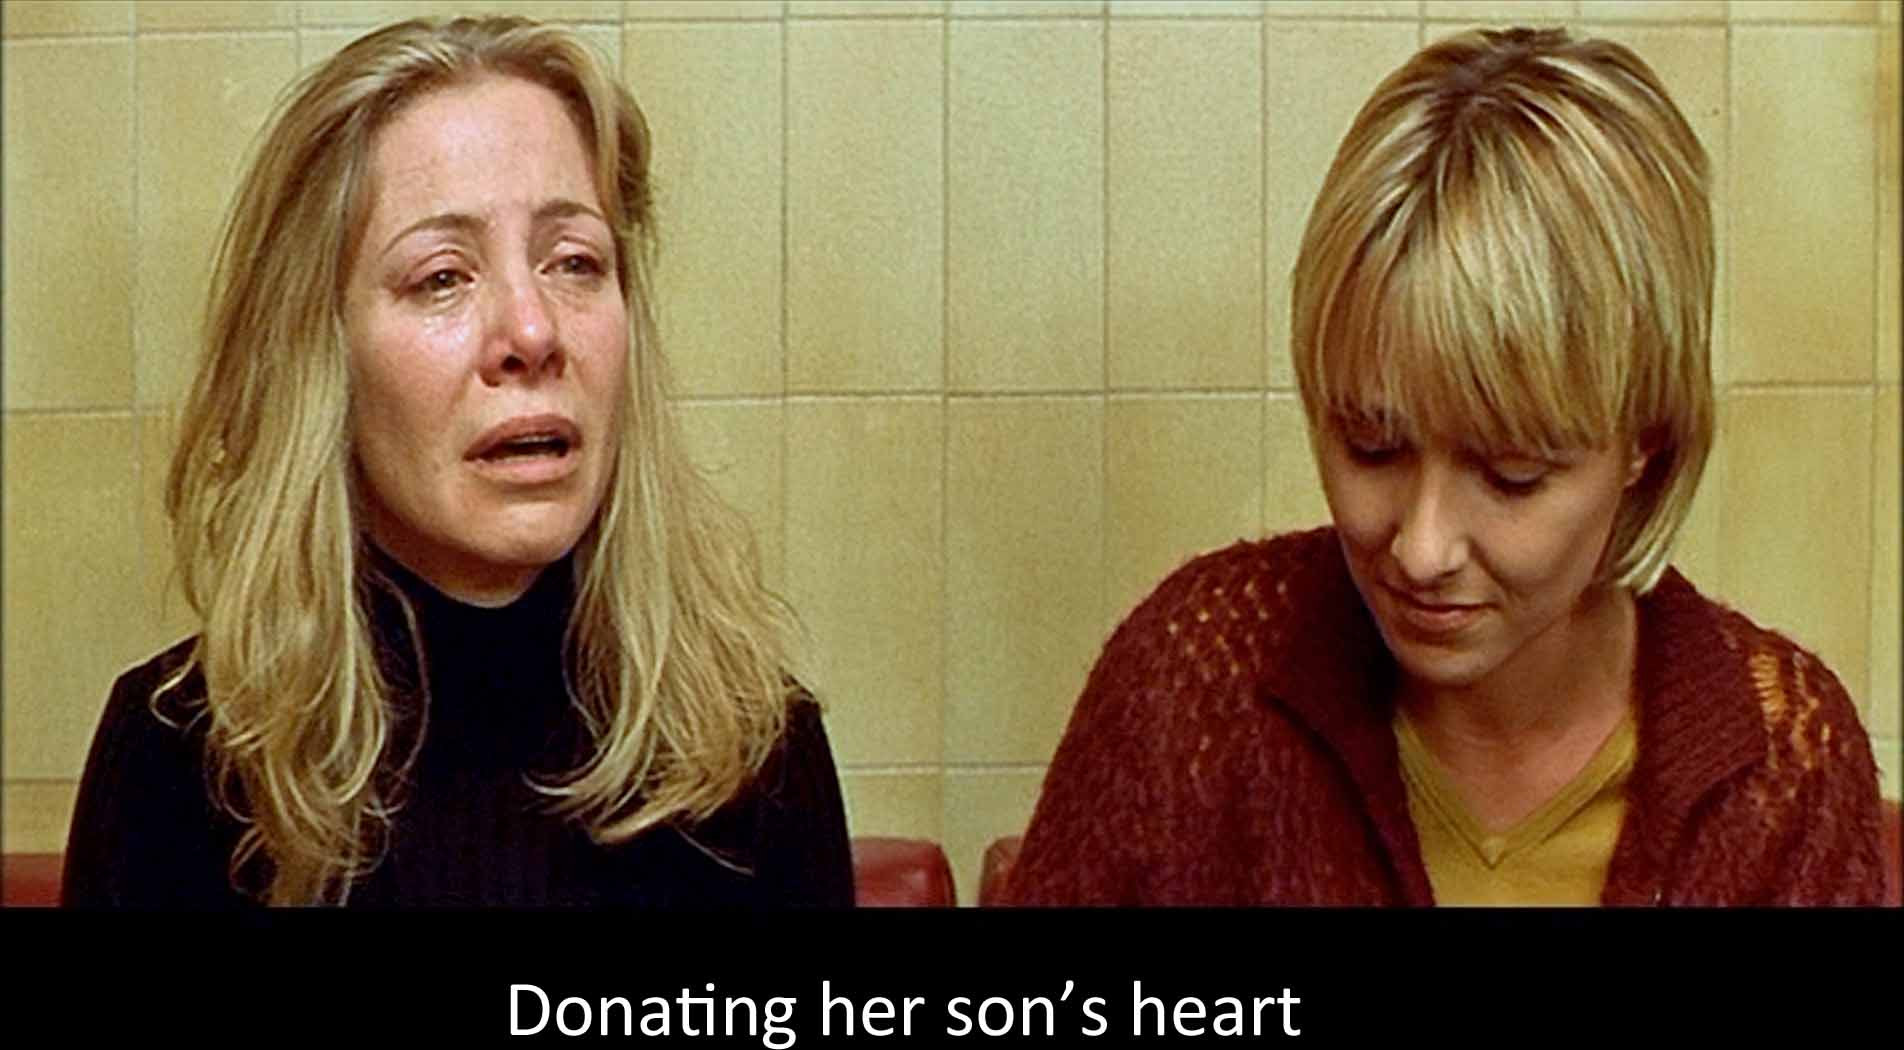 Donating her son's heart